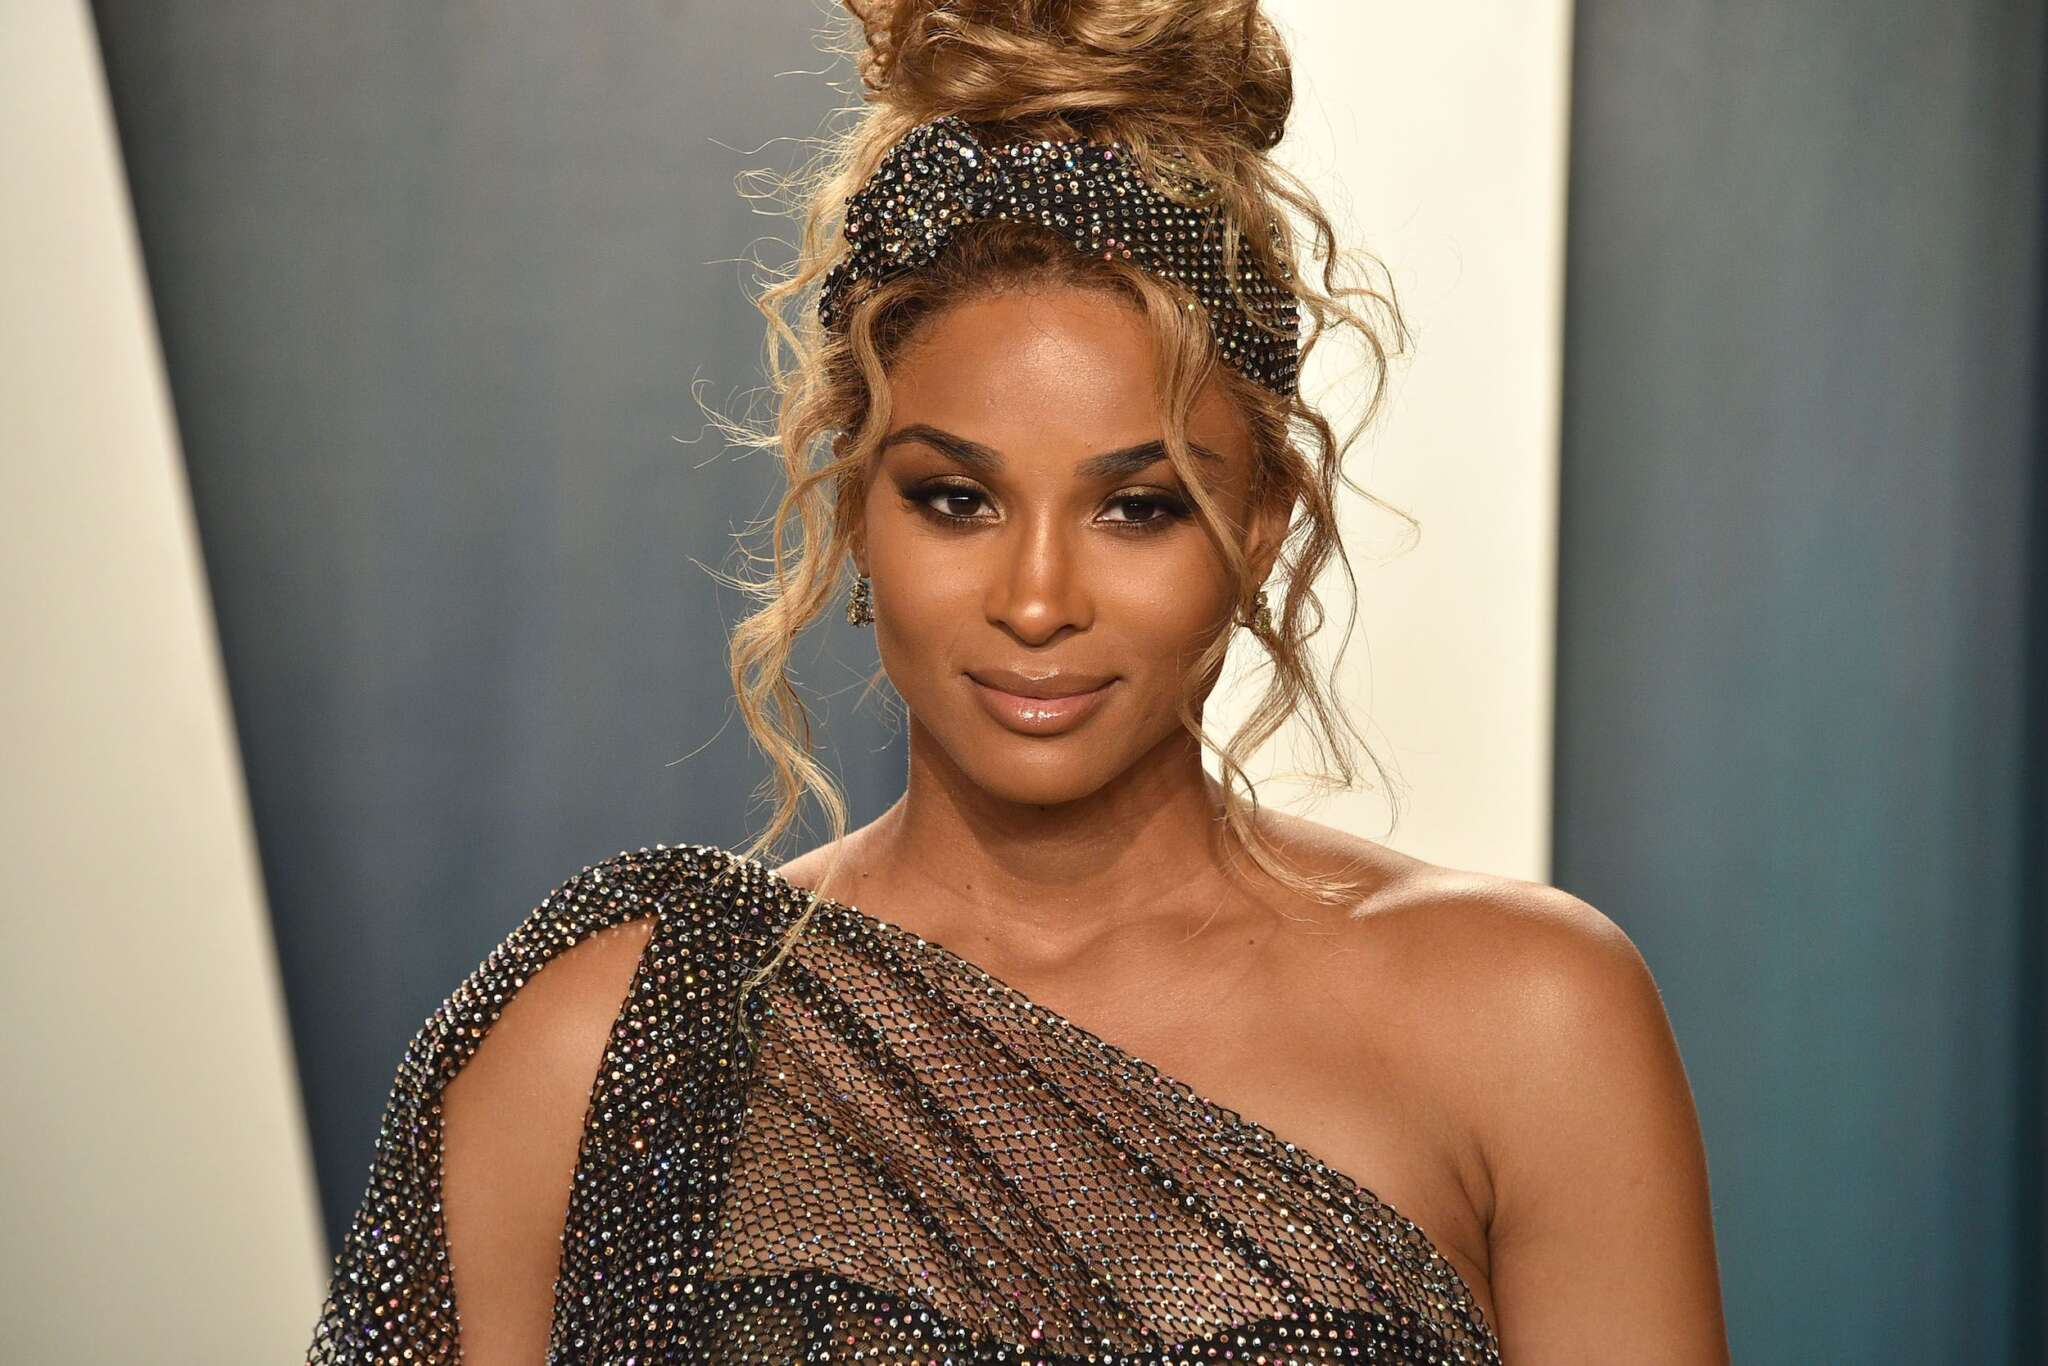 ciara-reveals-she-is-18-pounds-away-from-her-ideal-weight-7-months-after-welcoming-son-win-but-still-embracing-her-curves